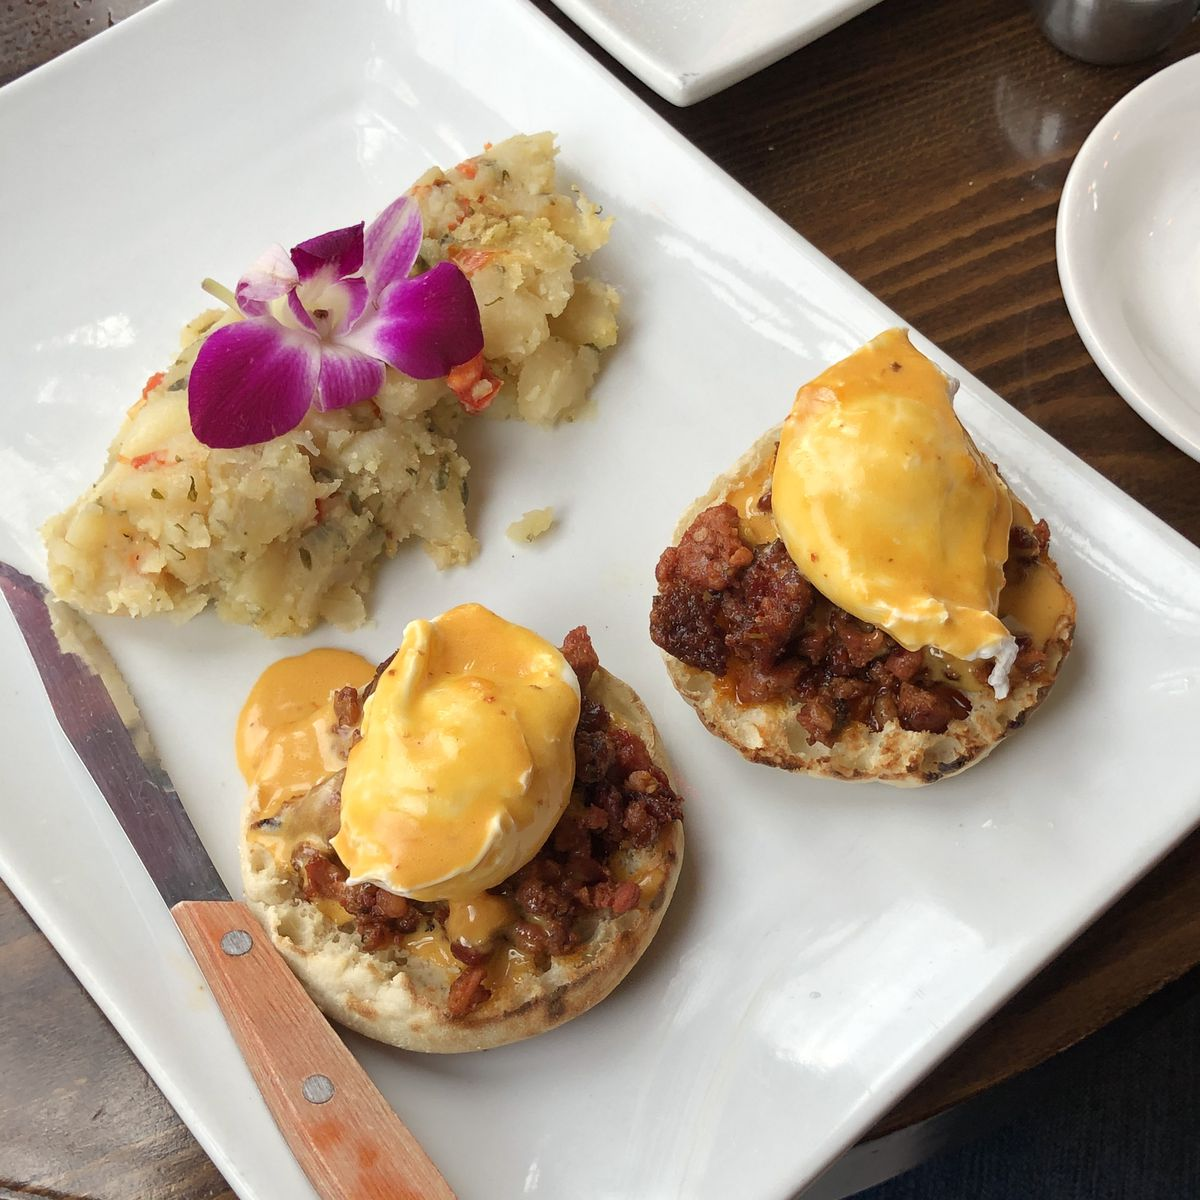 A white plate with a mound of mashed potatoes with a purple flower on top. Two poached eggs with pieces of chorizo sausage and an orange sauce on top of it.